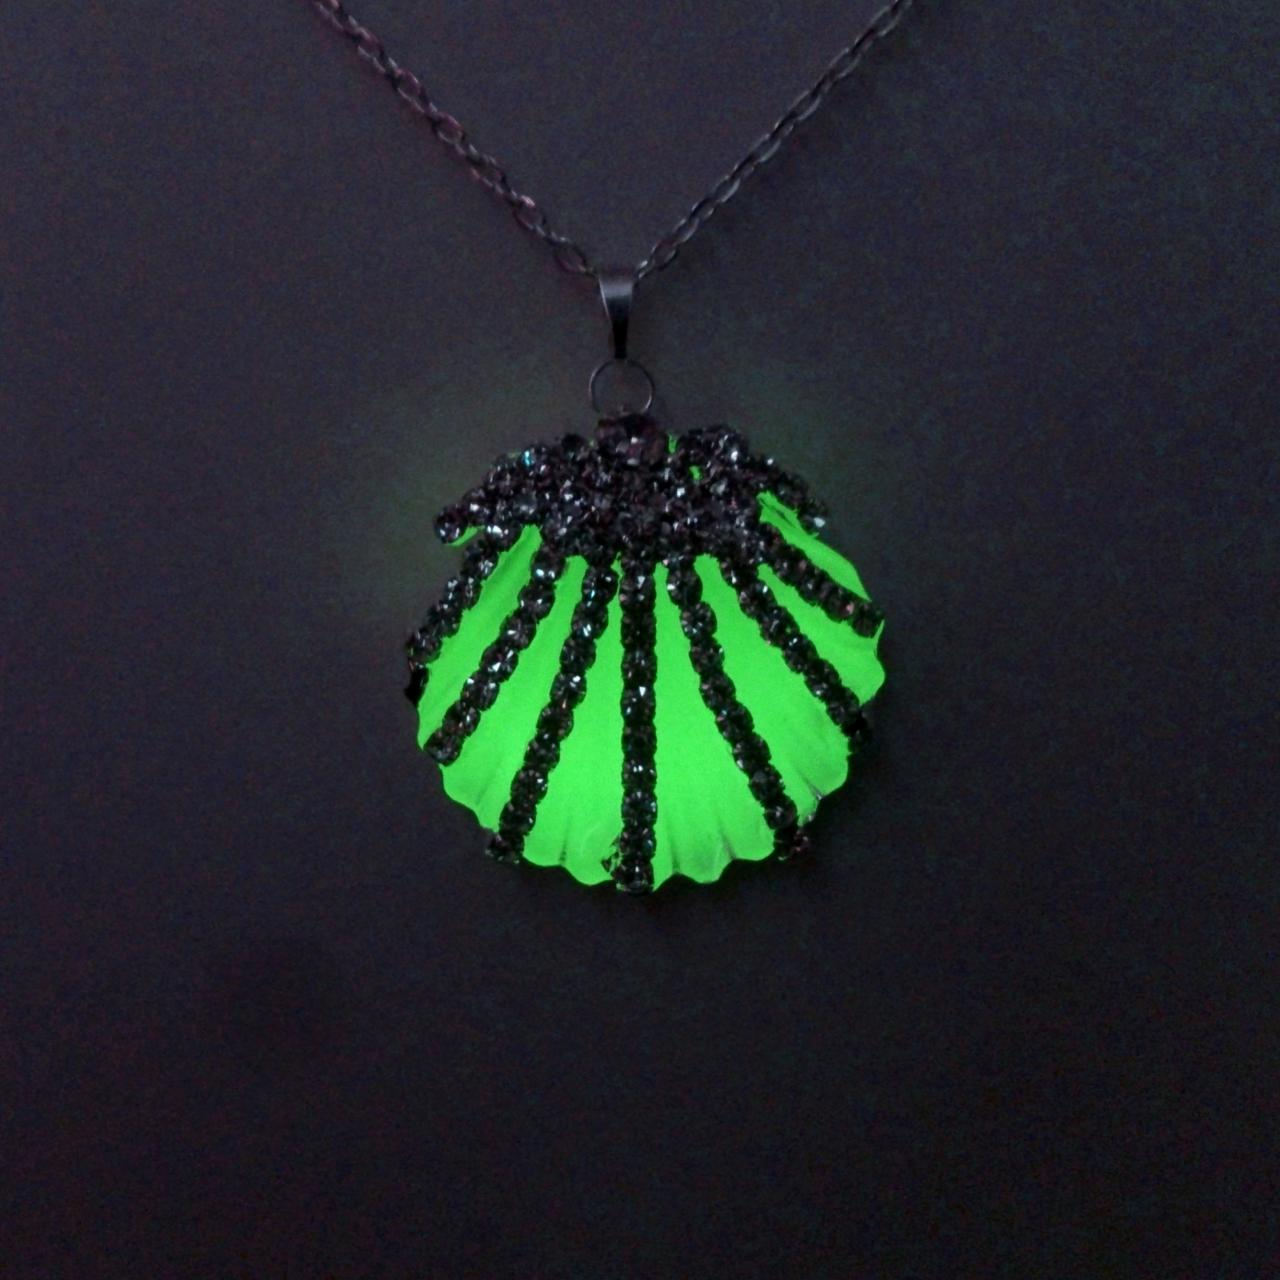 heart necklace led cn manufacturers alibaba shaped on and suppliers com countrysearch glow china plastic